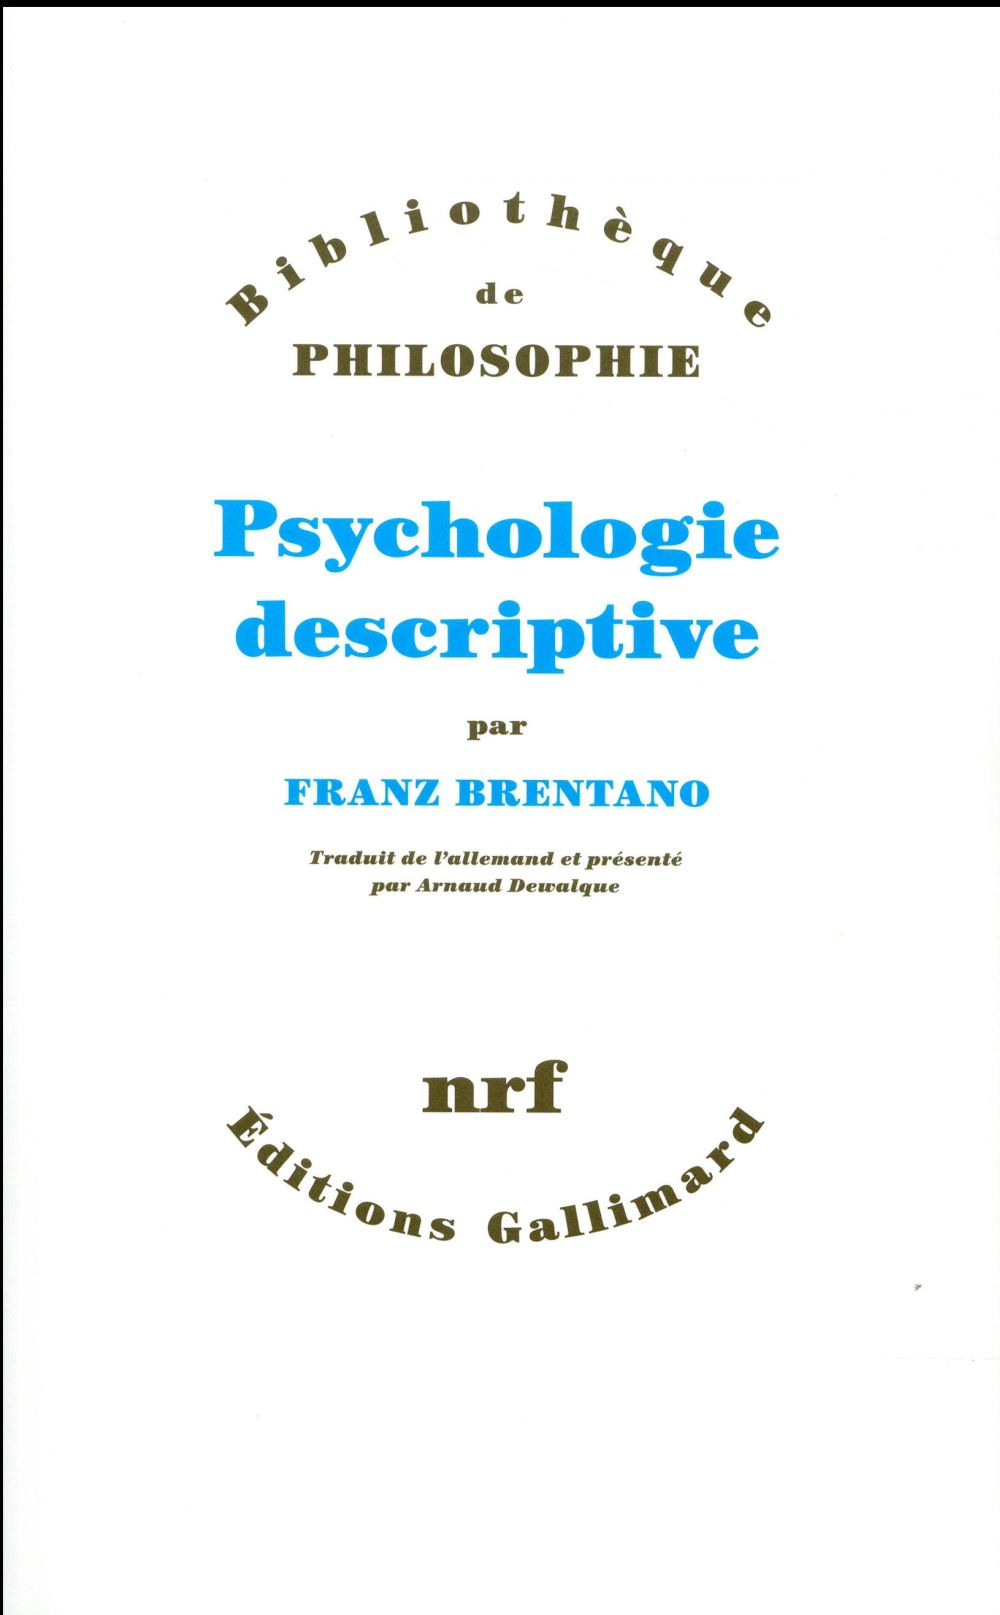 Psychologie descriptive